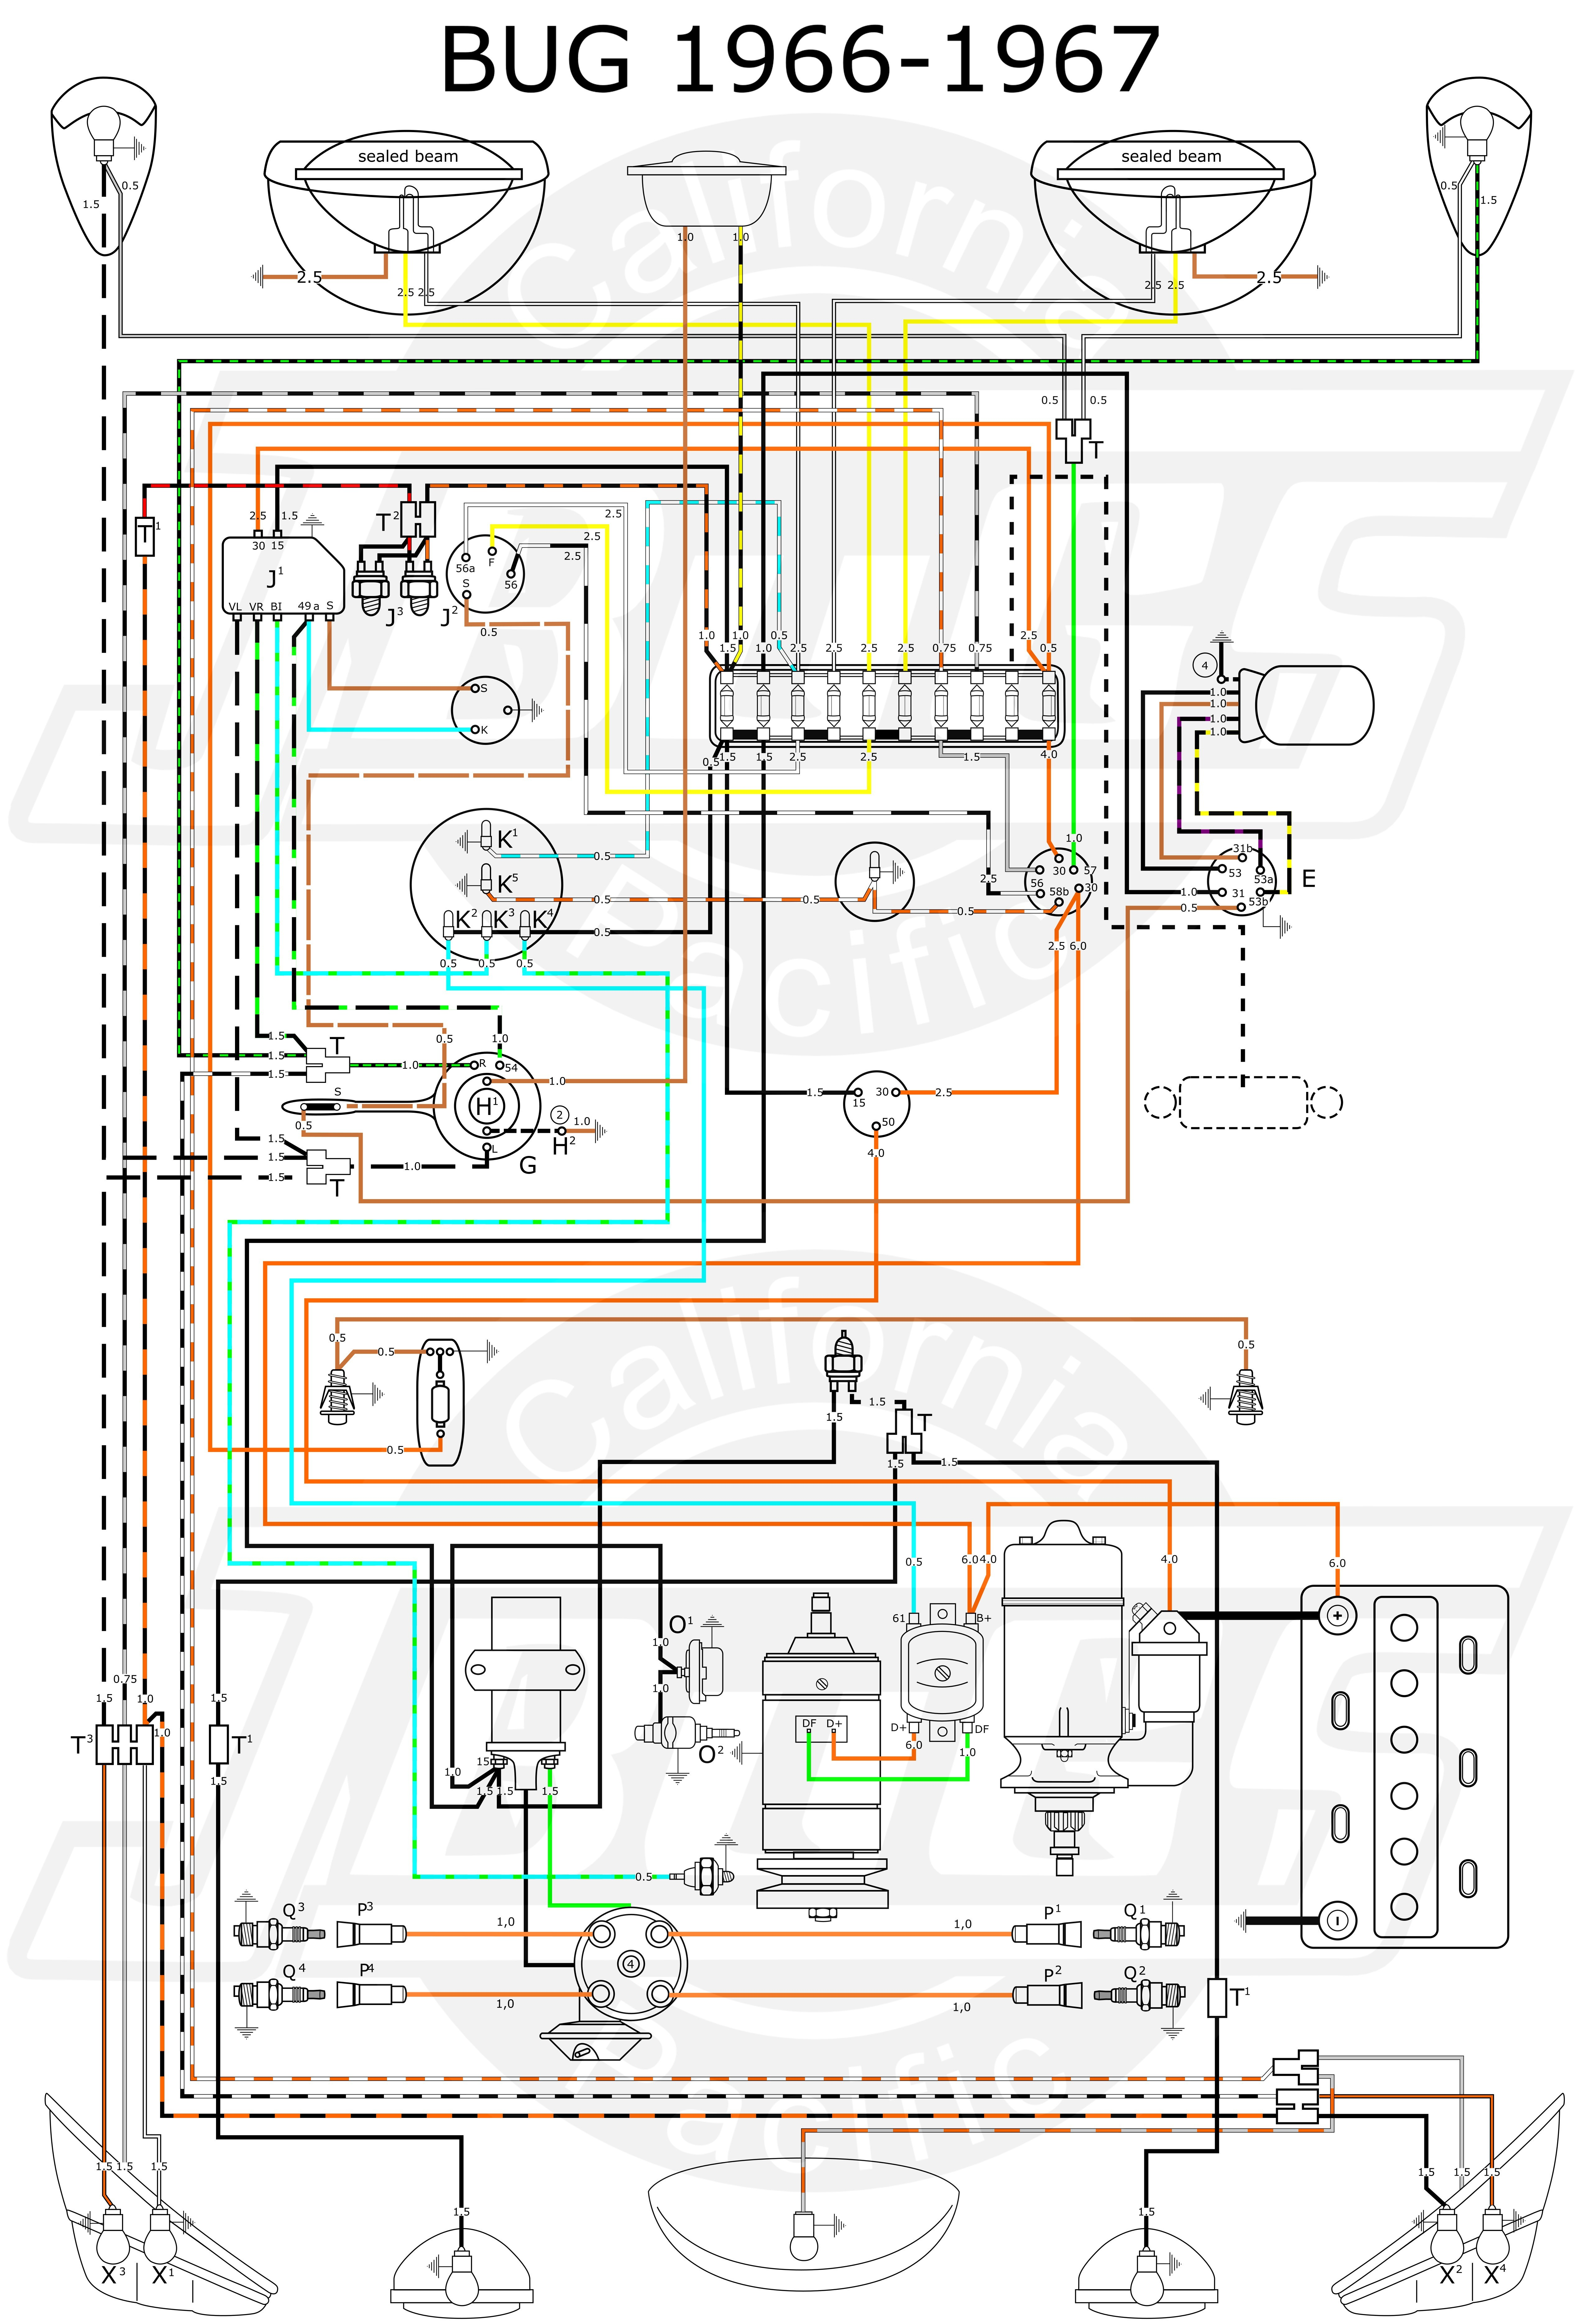 1999 Vw Beetle Engine Diagram 1978 Vw Super Beetle Engine Diagrams Experts Wiring Diagram • Of 1999 Vw Beetle Engine Diagram